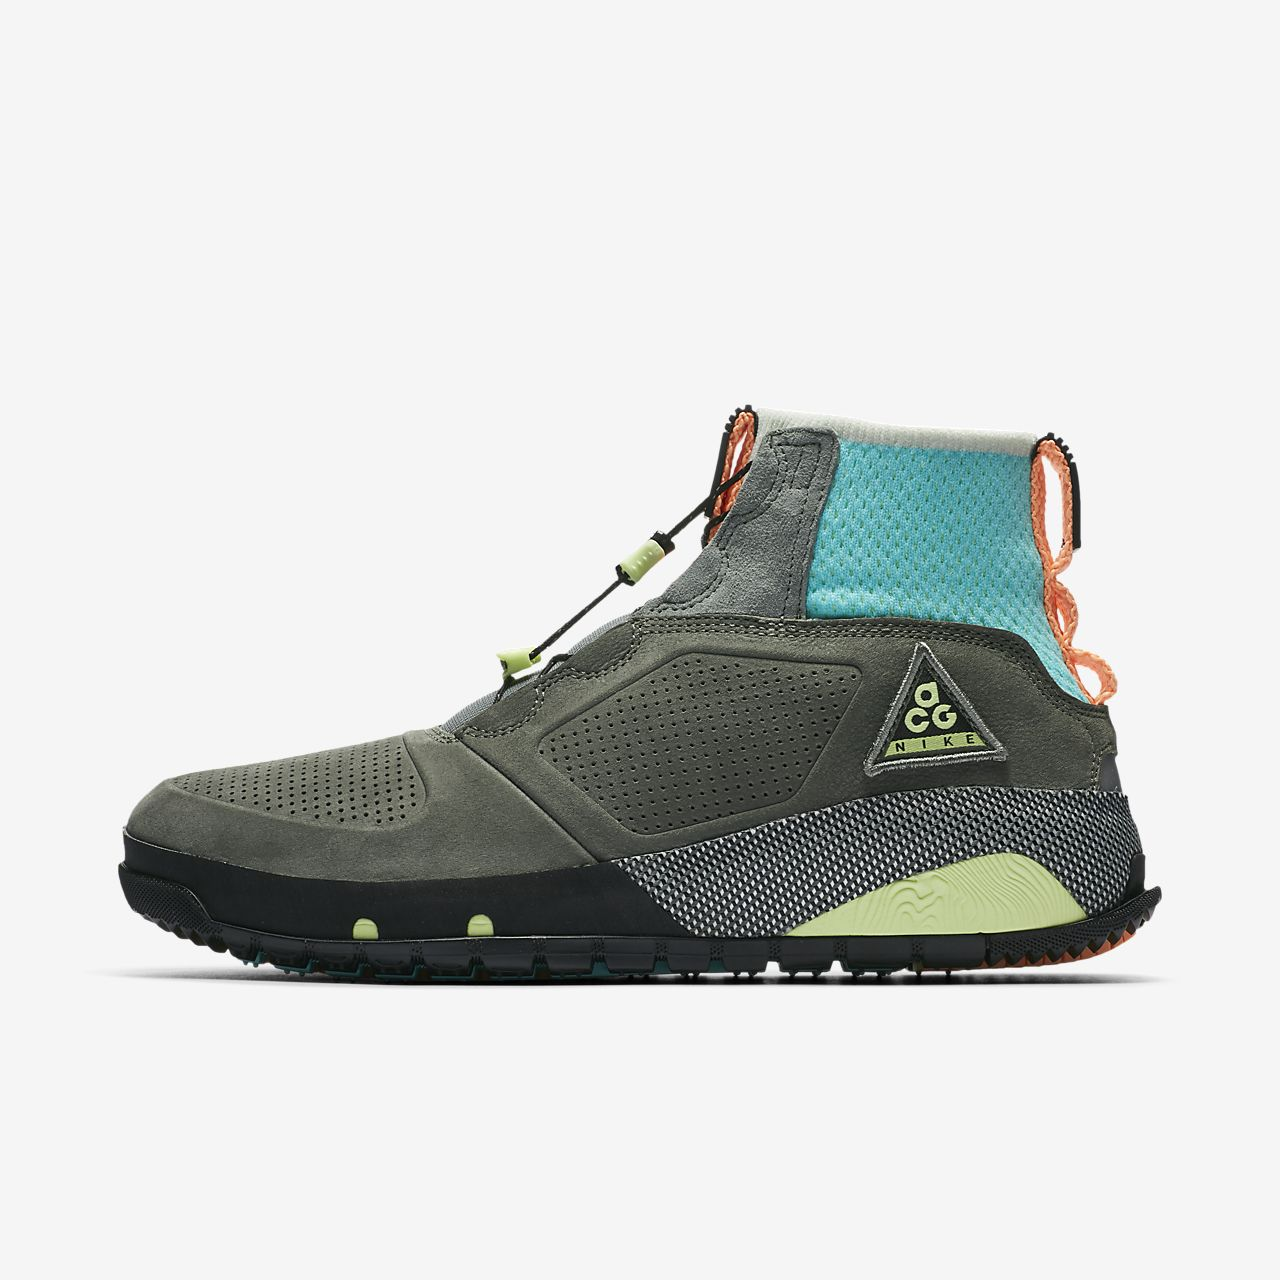 Chaussure Nike ACG Ruckle Ridge pour Homme